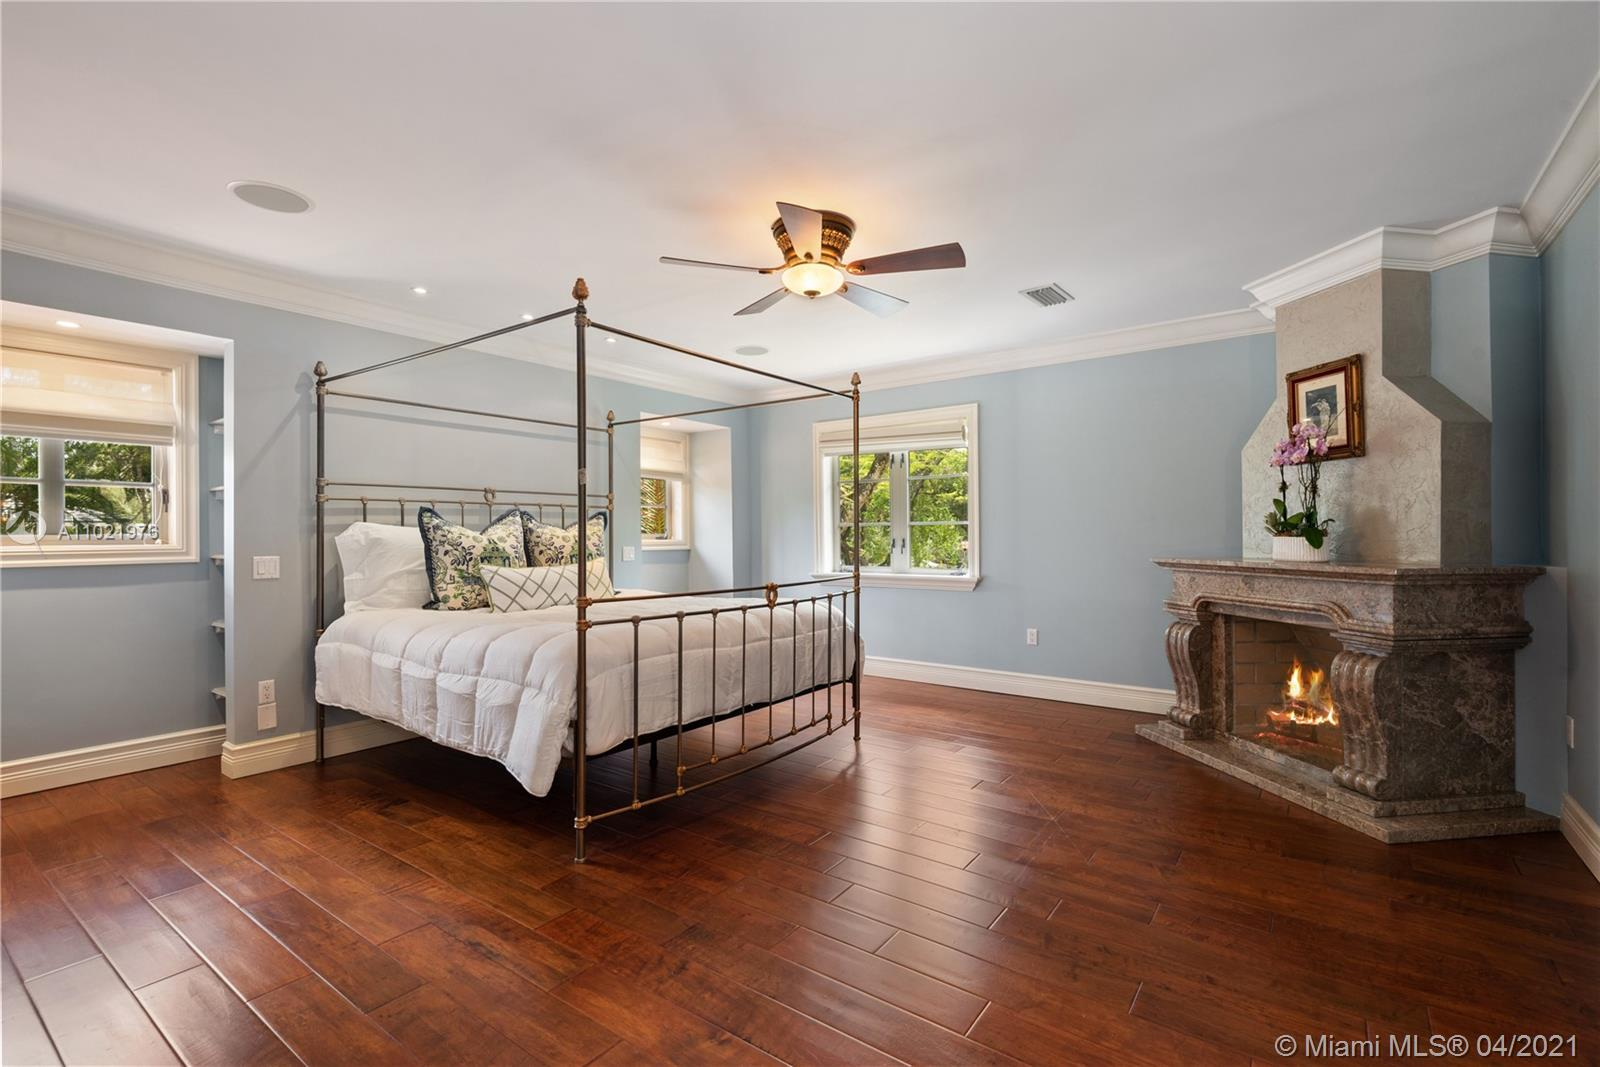 Master Bedroom has Walk In Closet with custom cabinetry.